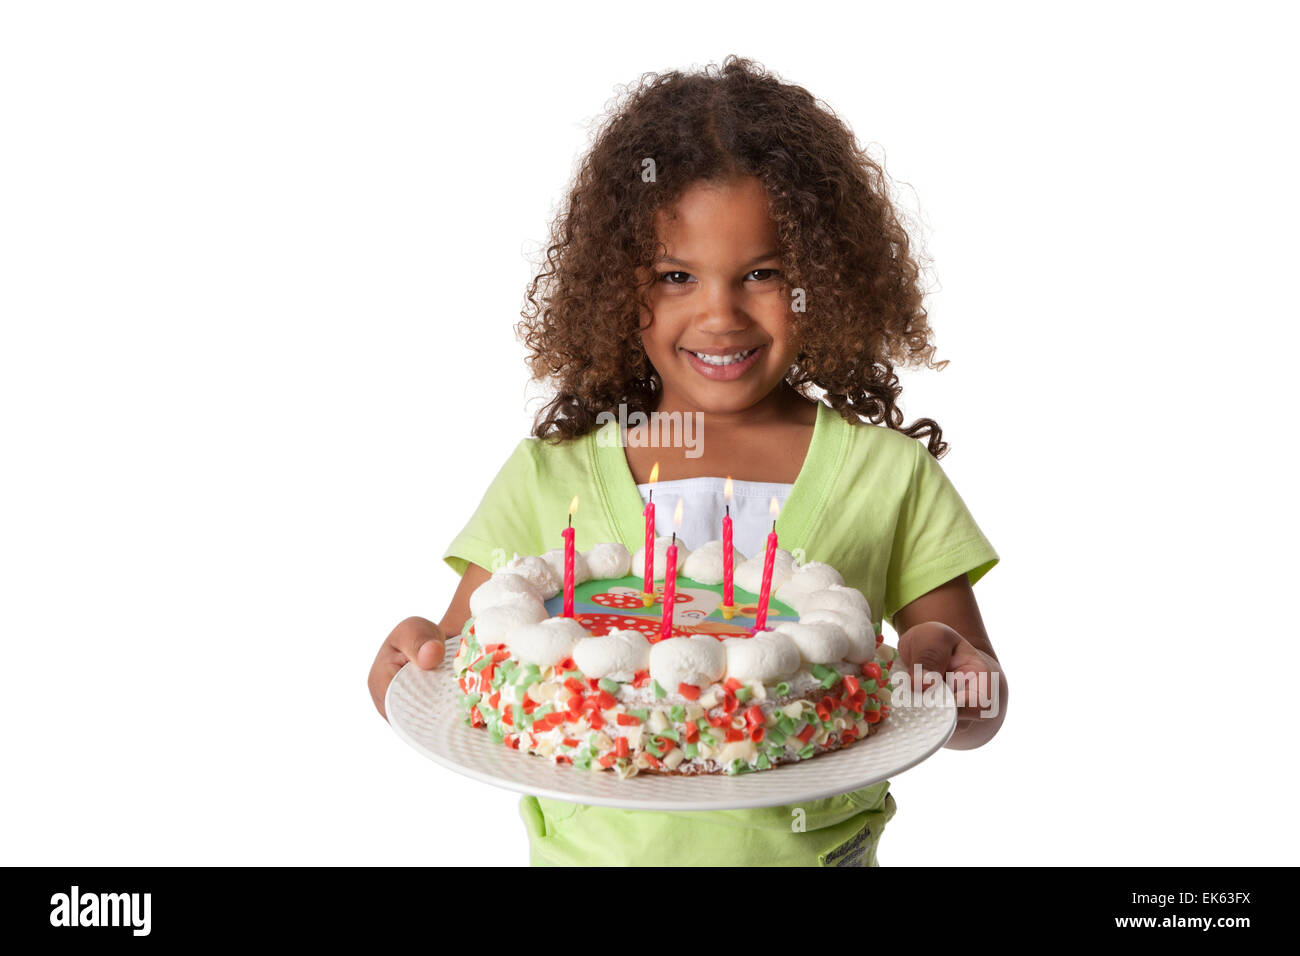 Remarkable Five Year Old Girl With A Birthday Cake With 5 Candles On White Funny Birthday Cards Online Benoljebrpdamsfinfo